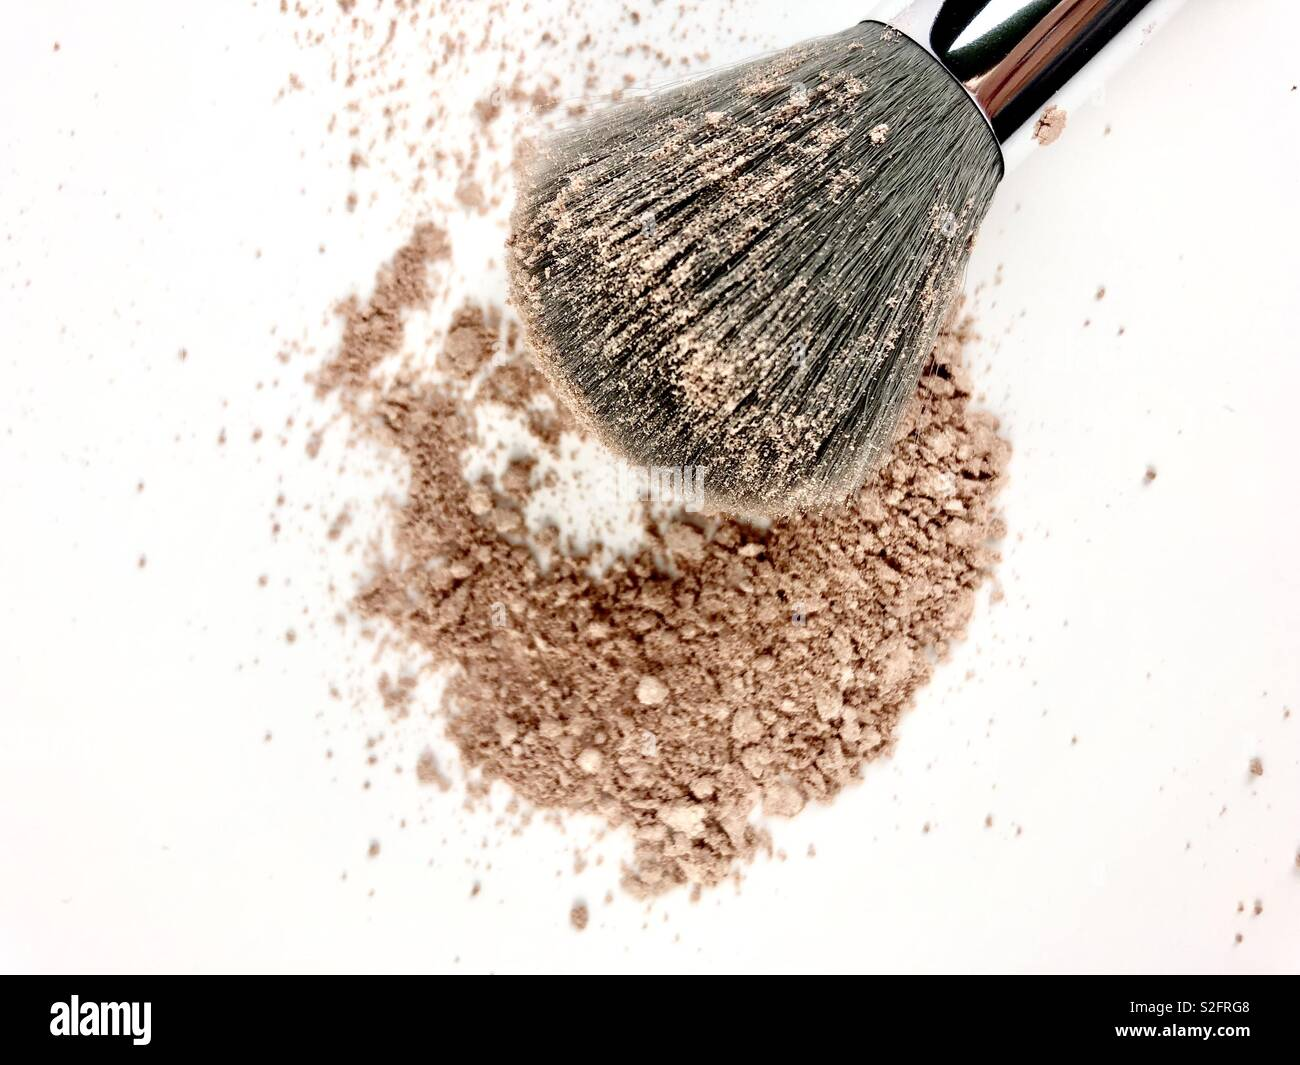 Powdered makeup and brush on white background - Stock Image